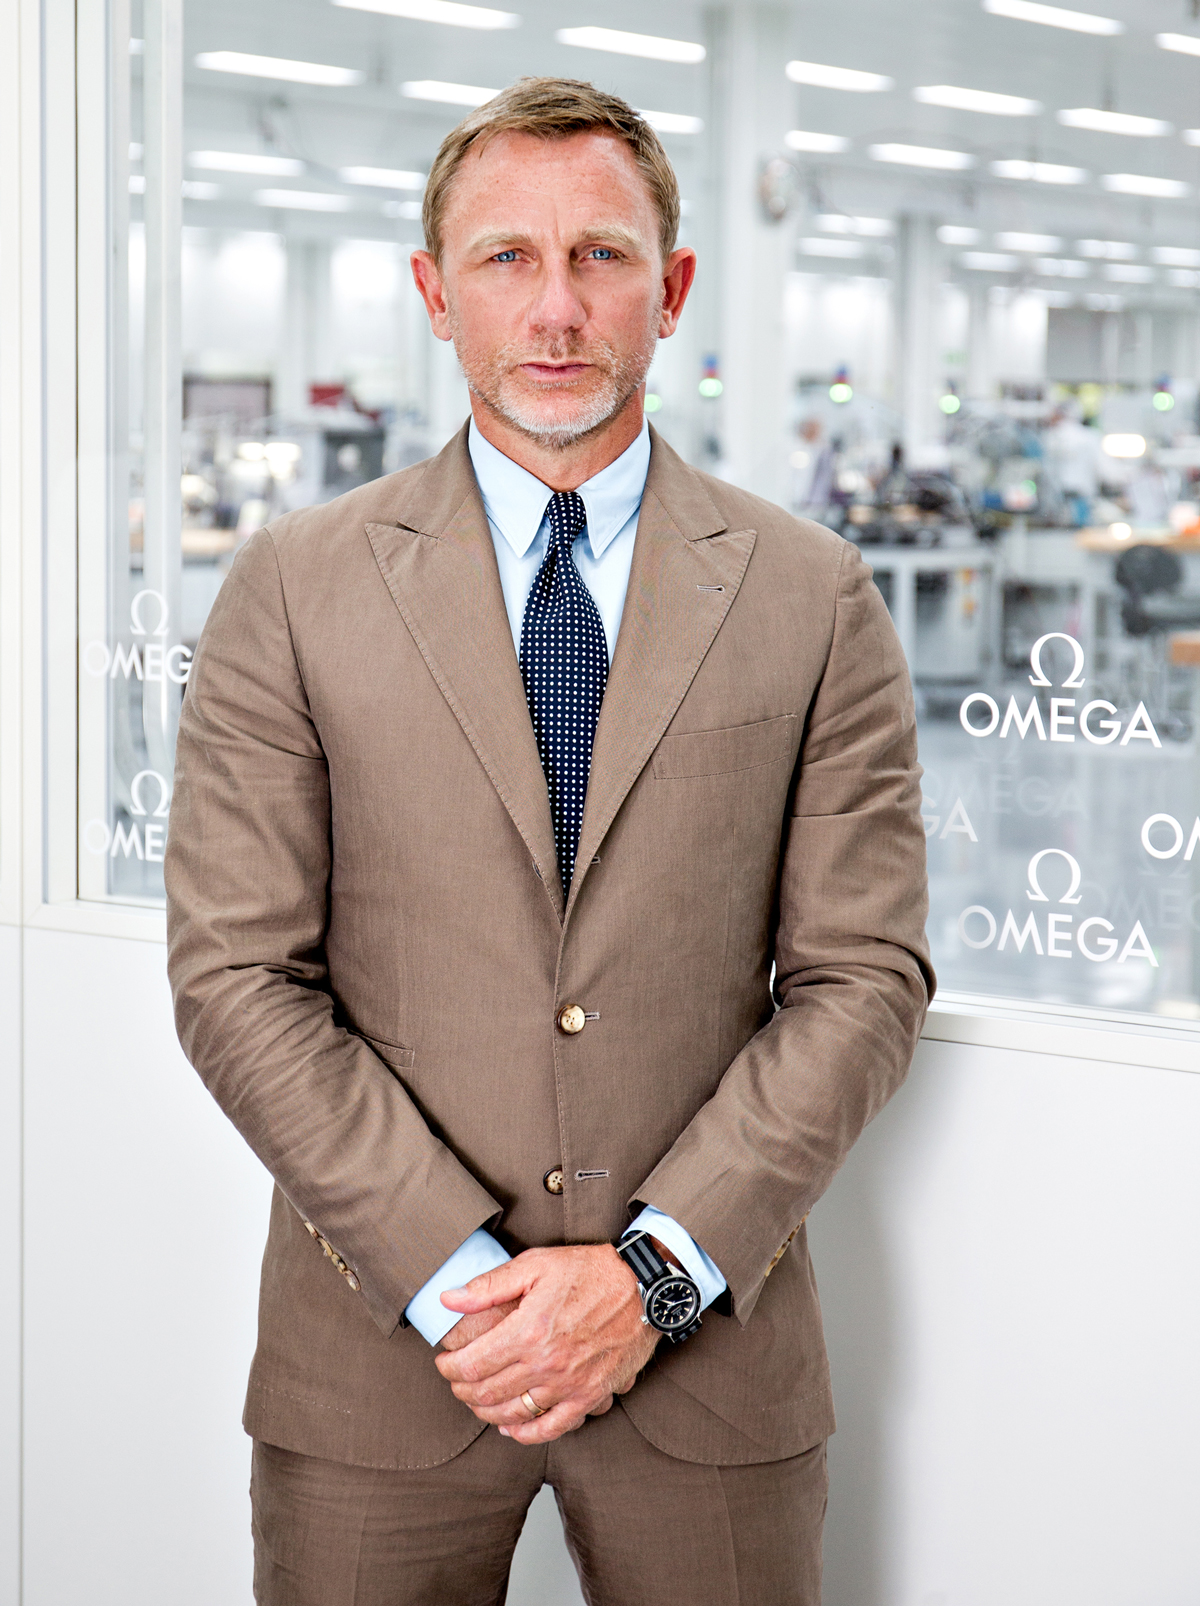 OMEGA Daniel-Craig-is-seen-at-the-OMEGA-Factory-Visit-in-Switzerland_2